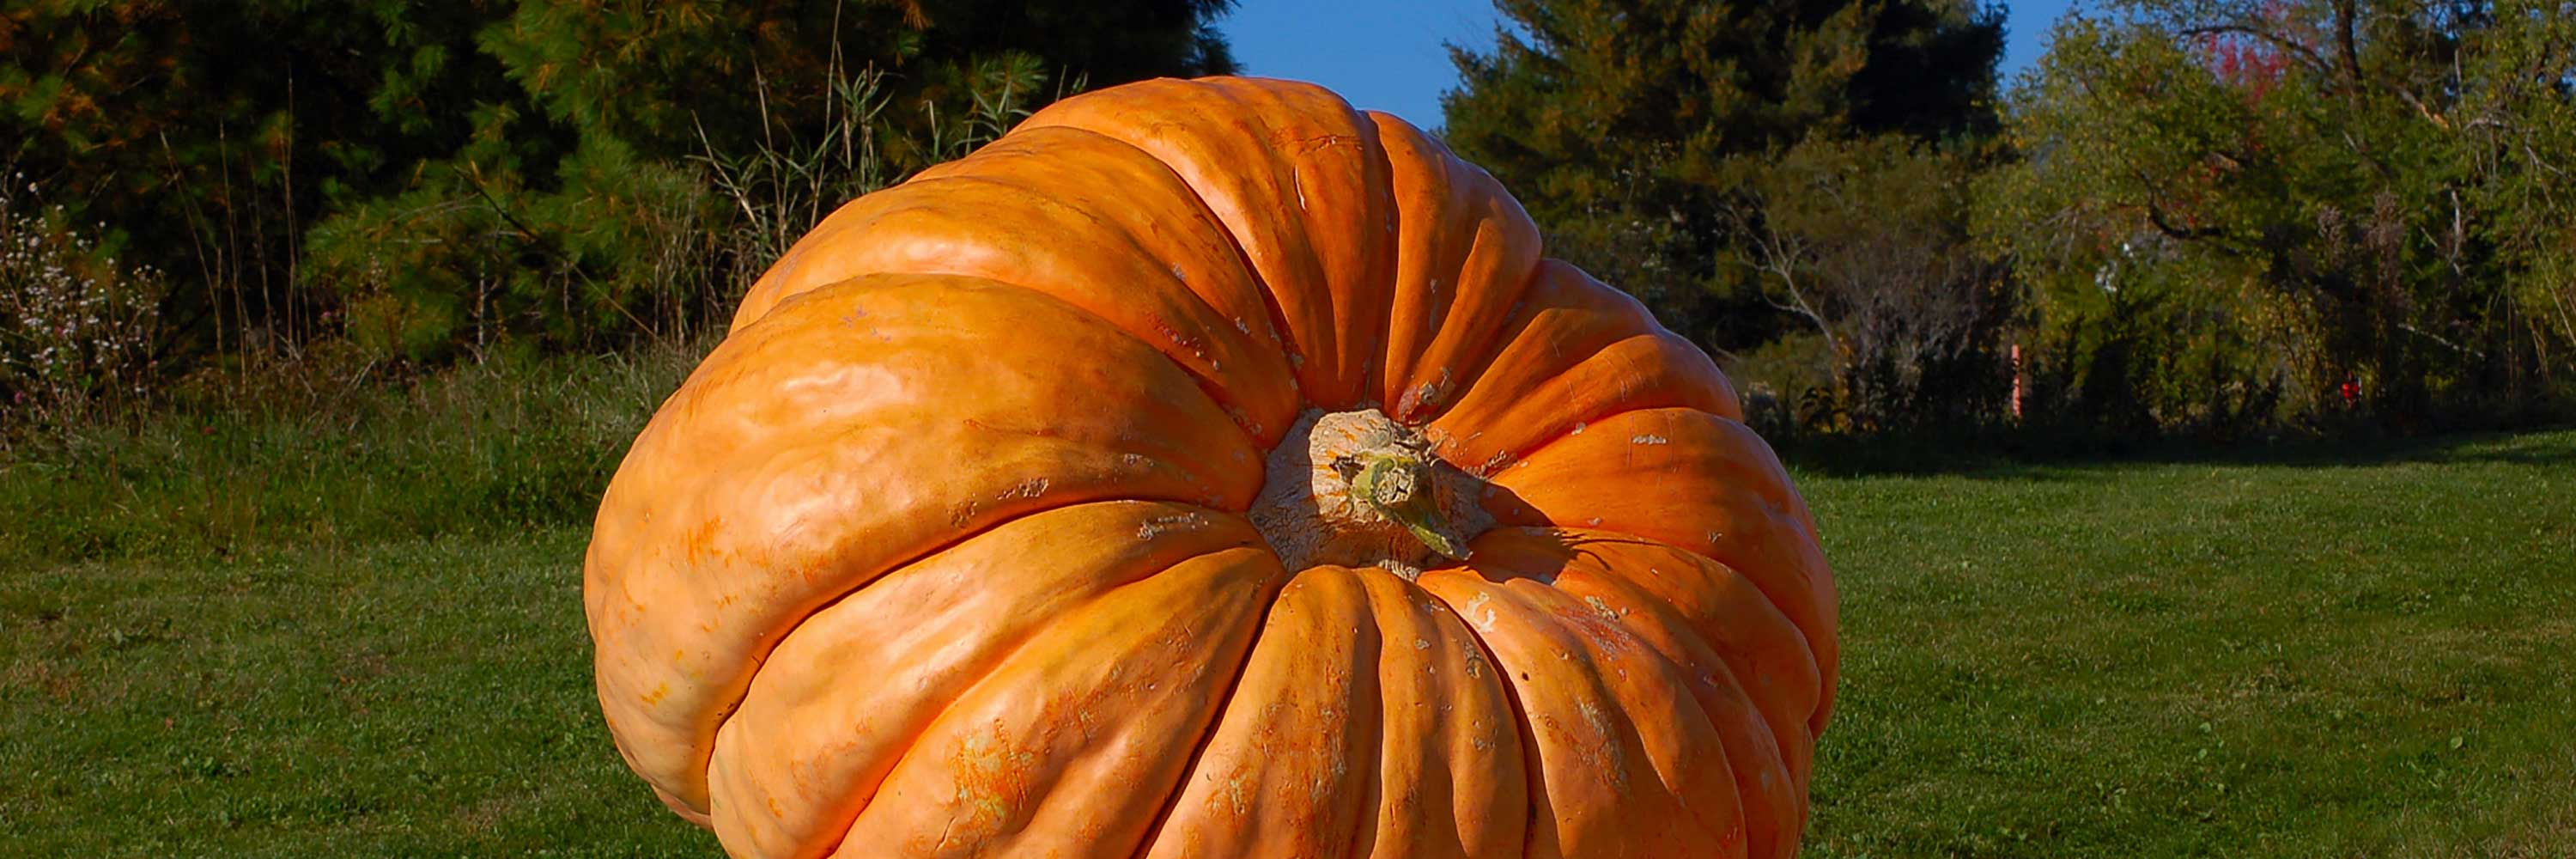 Picture of large pumpkin